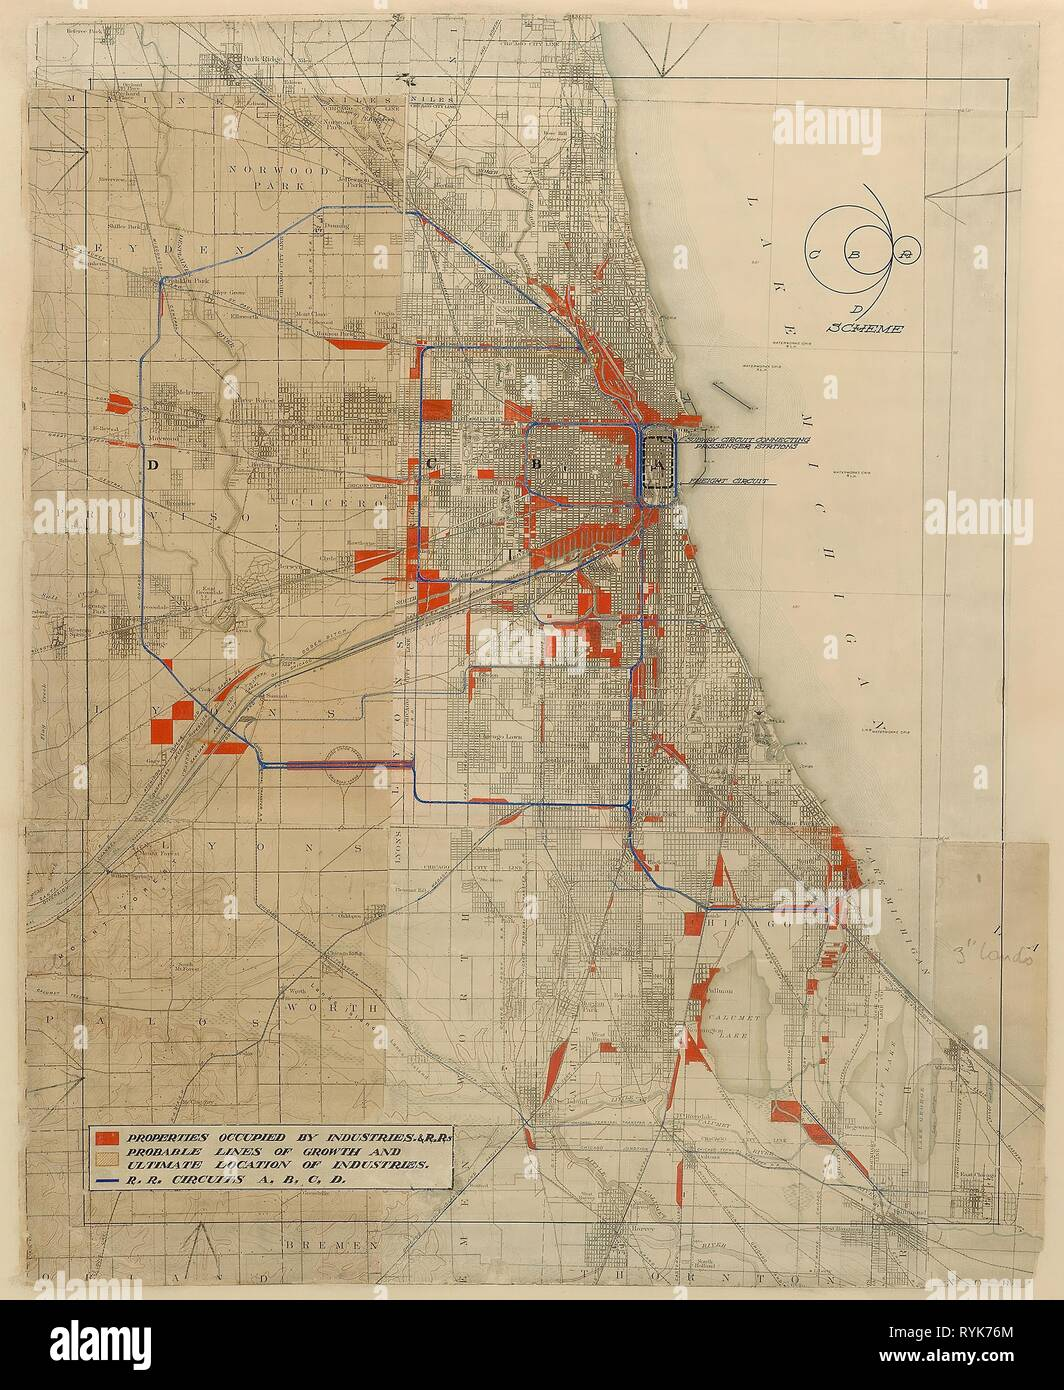 Plan of Chicago, Chicago, Illinois, Railroad Circuits ... Chicago Museum Map on chicago church map, chicago store map, chicago lawrence map, chicago coffee map, chicago brewery map, chicago snow map, chicago aquarium map, chicago cemetery map, chicago bridge map, chicago area museums, chicago antique map, chicago construction map, chicago water map, chicago harbour map, chicago botanical garden map, chicago bay map, chicago shops map, chicago jazz festival map, chicago map downtown pdf, chicago marina map,